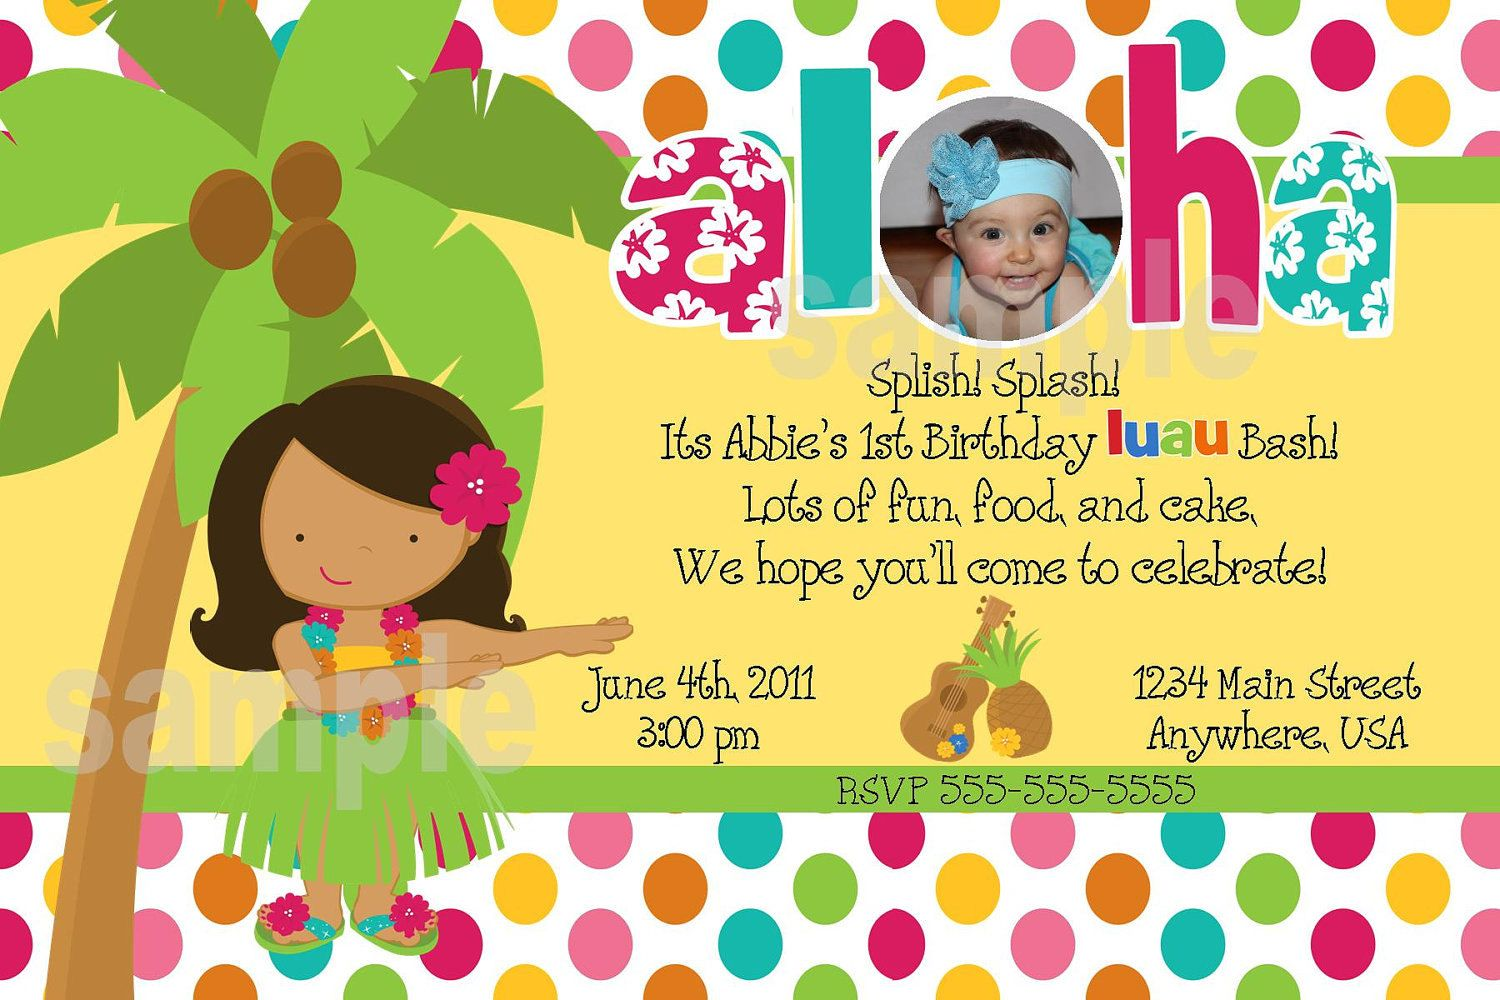 Luau birthday invitations printable digital file aloha 900 luau birthday invitations printable digital file aloha 900 via etsy filmwisefo